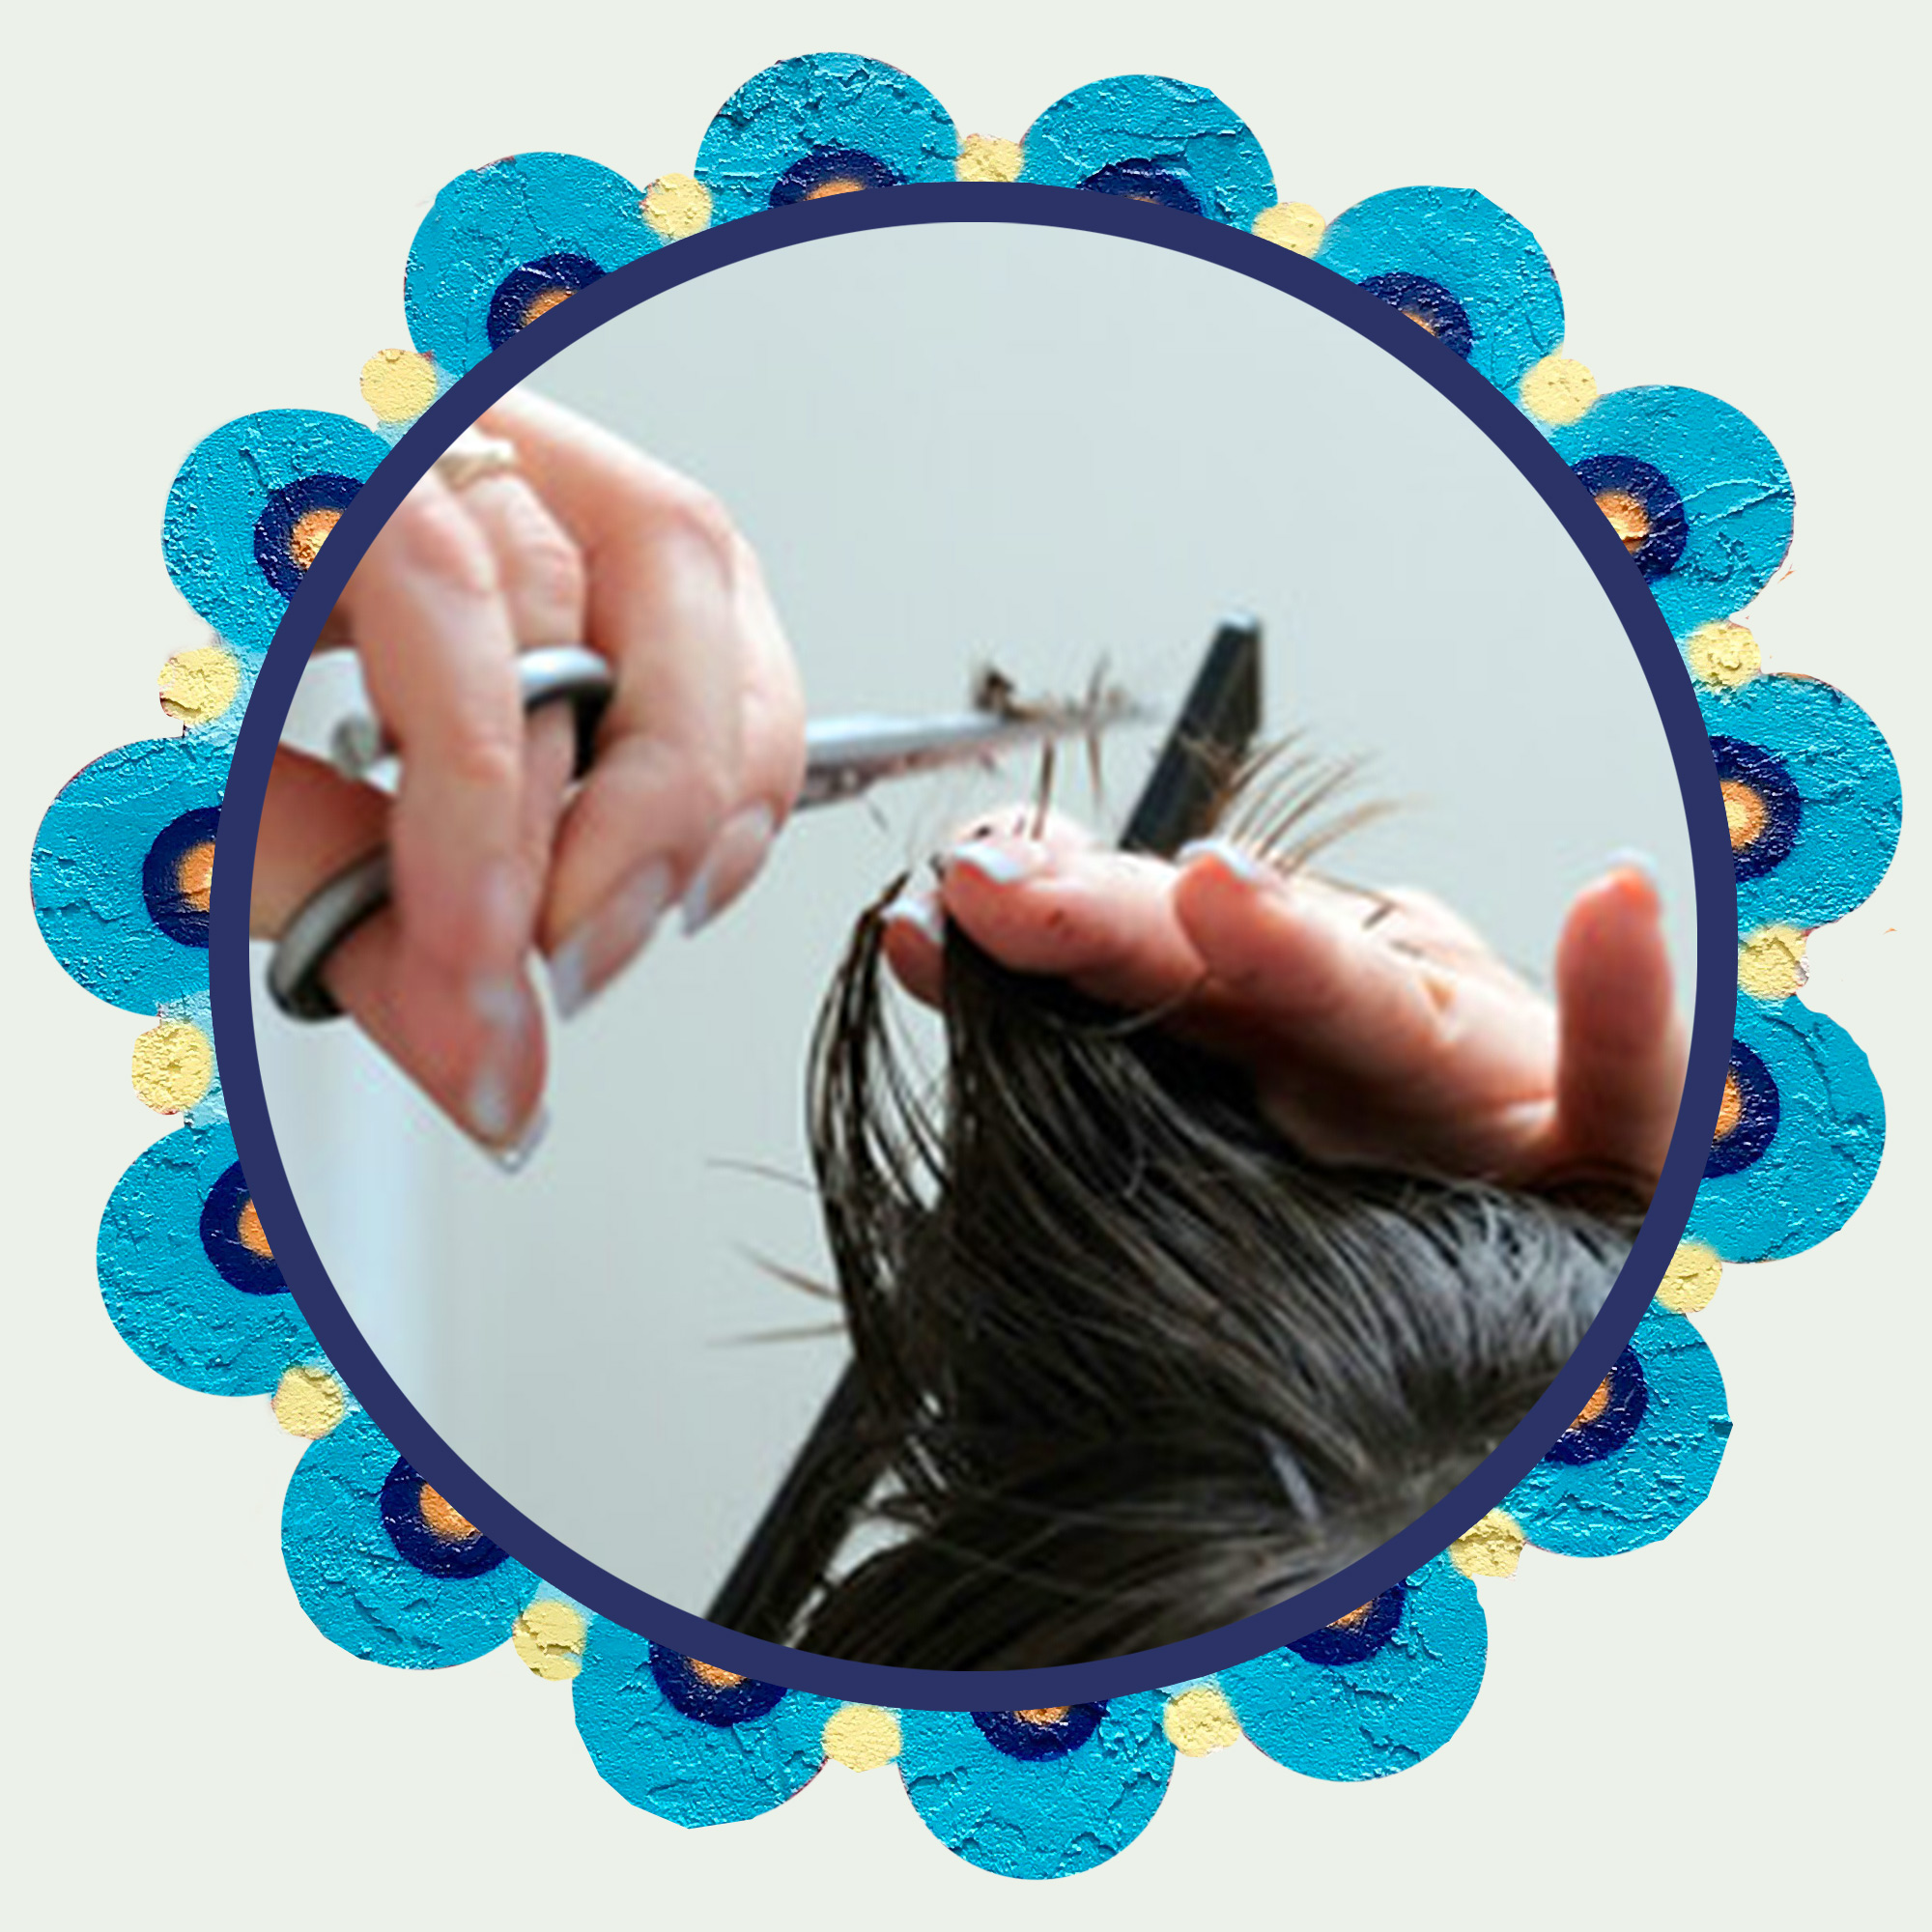 Cut & Style Services - Women's Cut—$45+Men's Cut—$25+Child's Cut—$18+ (Up to age 9 or at stylist's discretion)Shampoo & Style—$25+